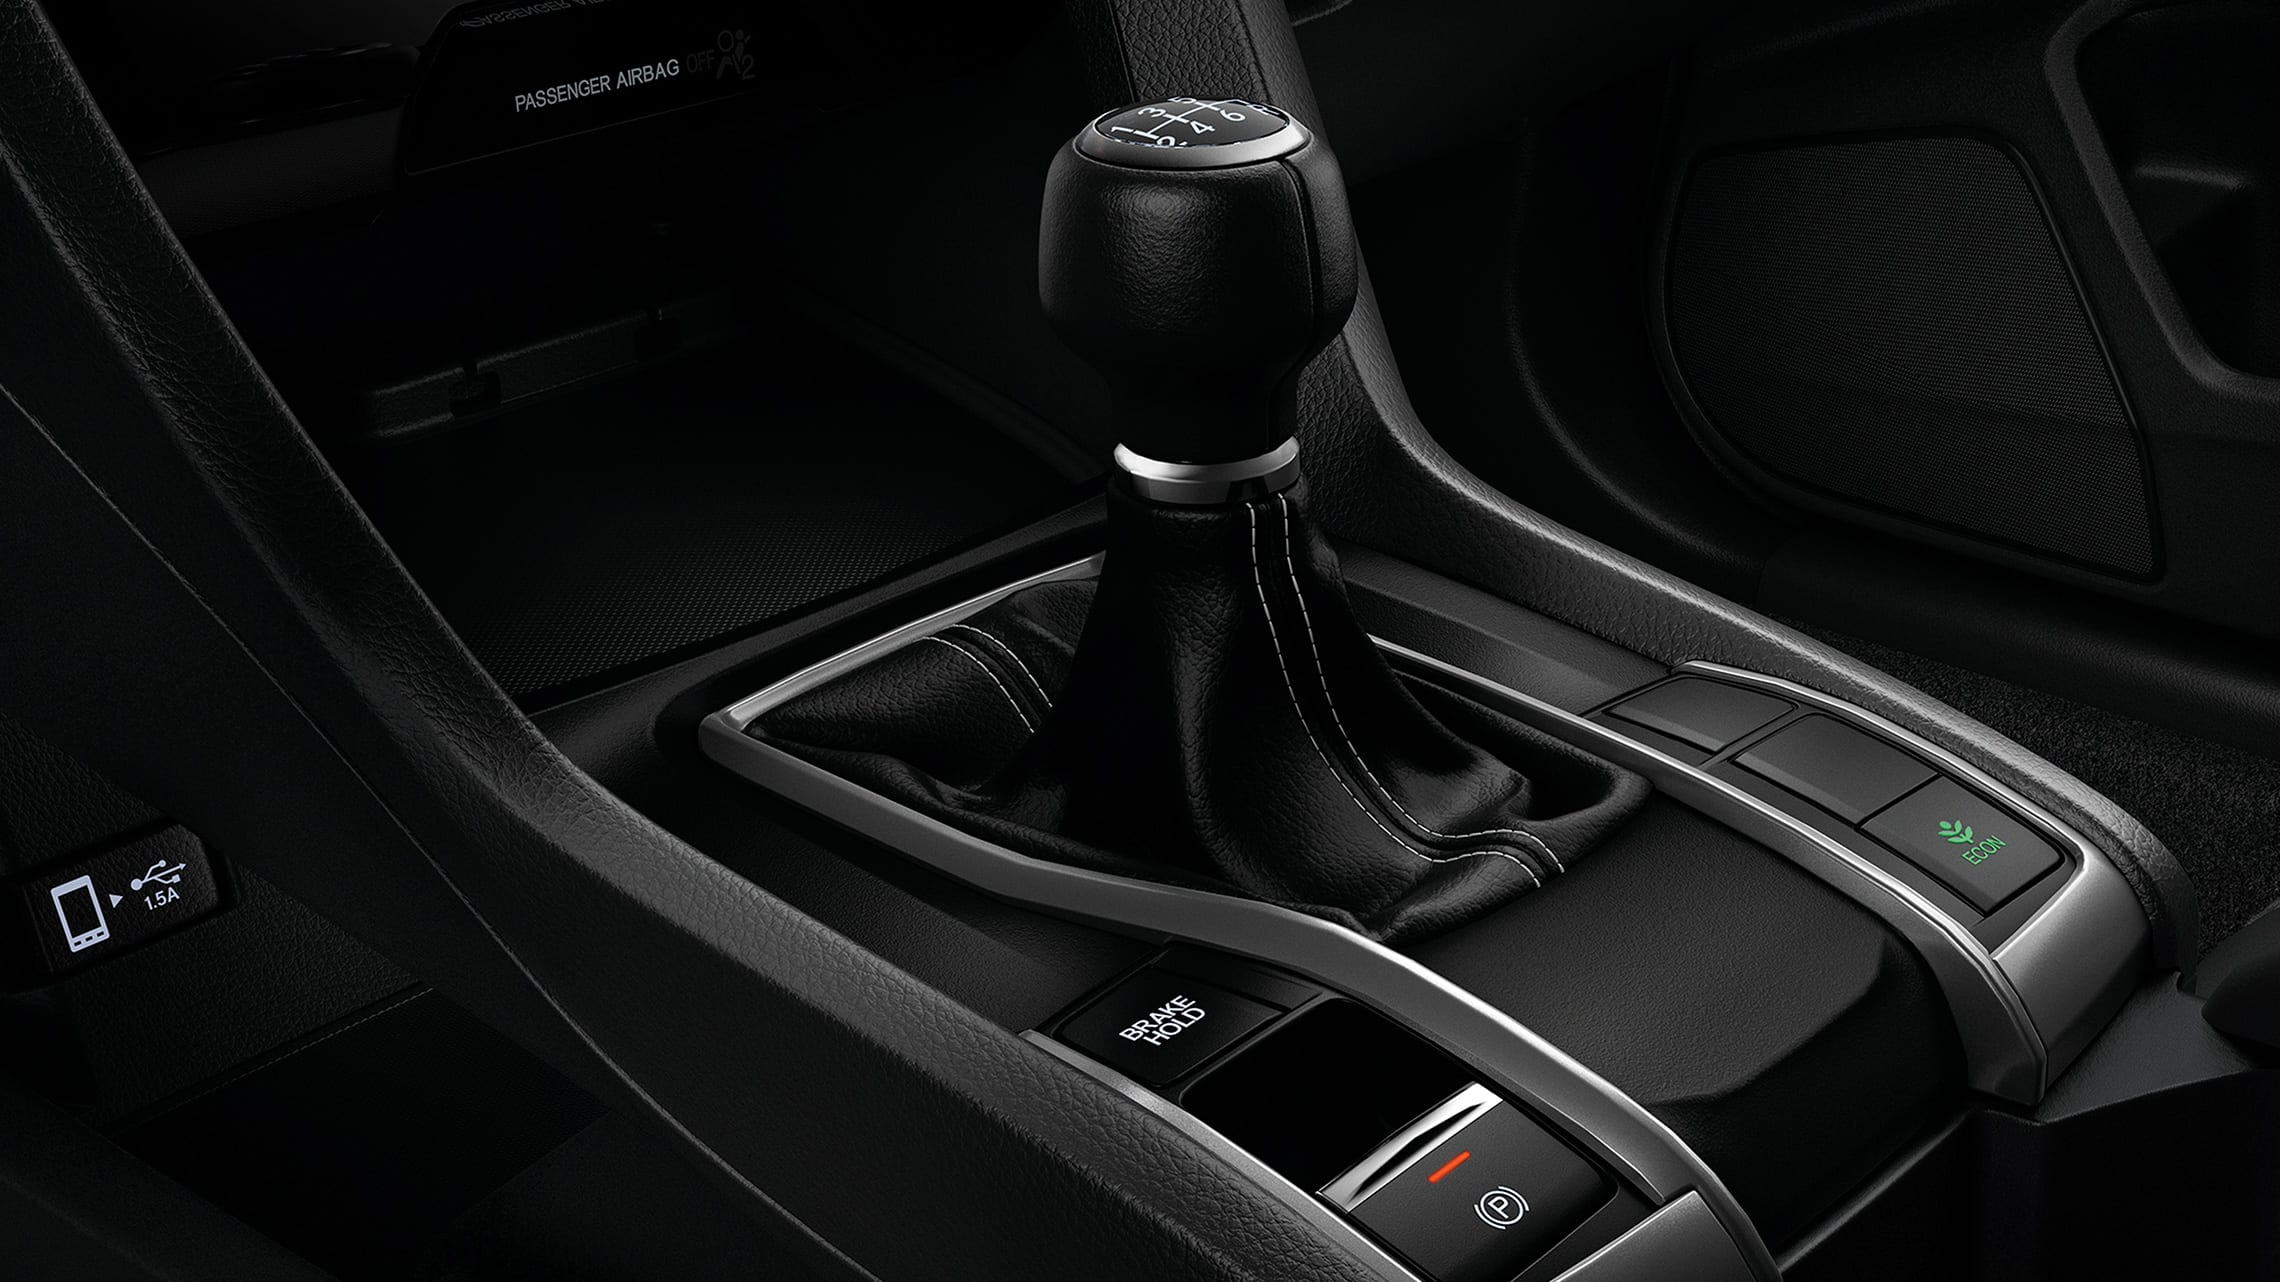 The public and broadcasting manual transmission